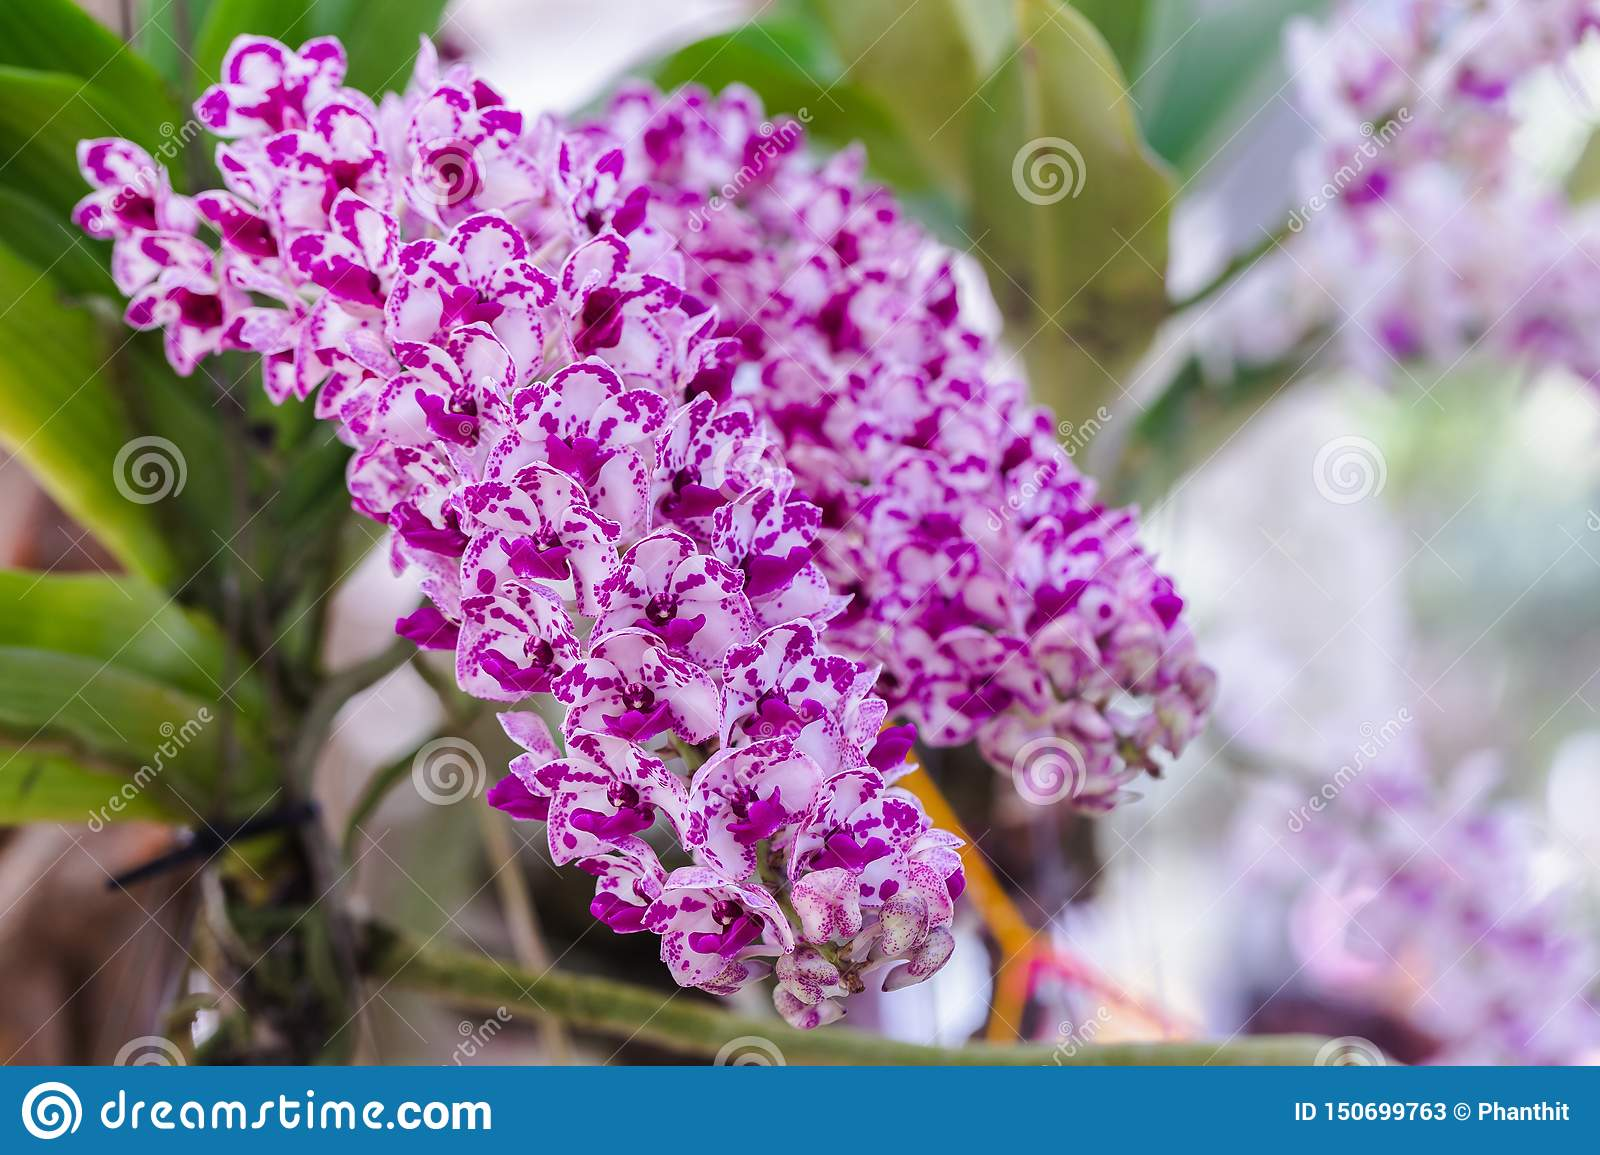 Orchid flower in orchid garden at winter or spring day for postcard beauty concept design. Rhynchostylis Orchidaceae.